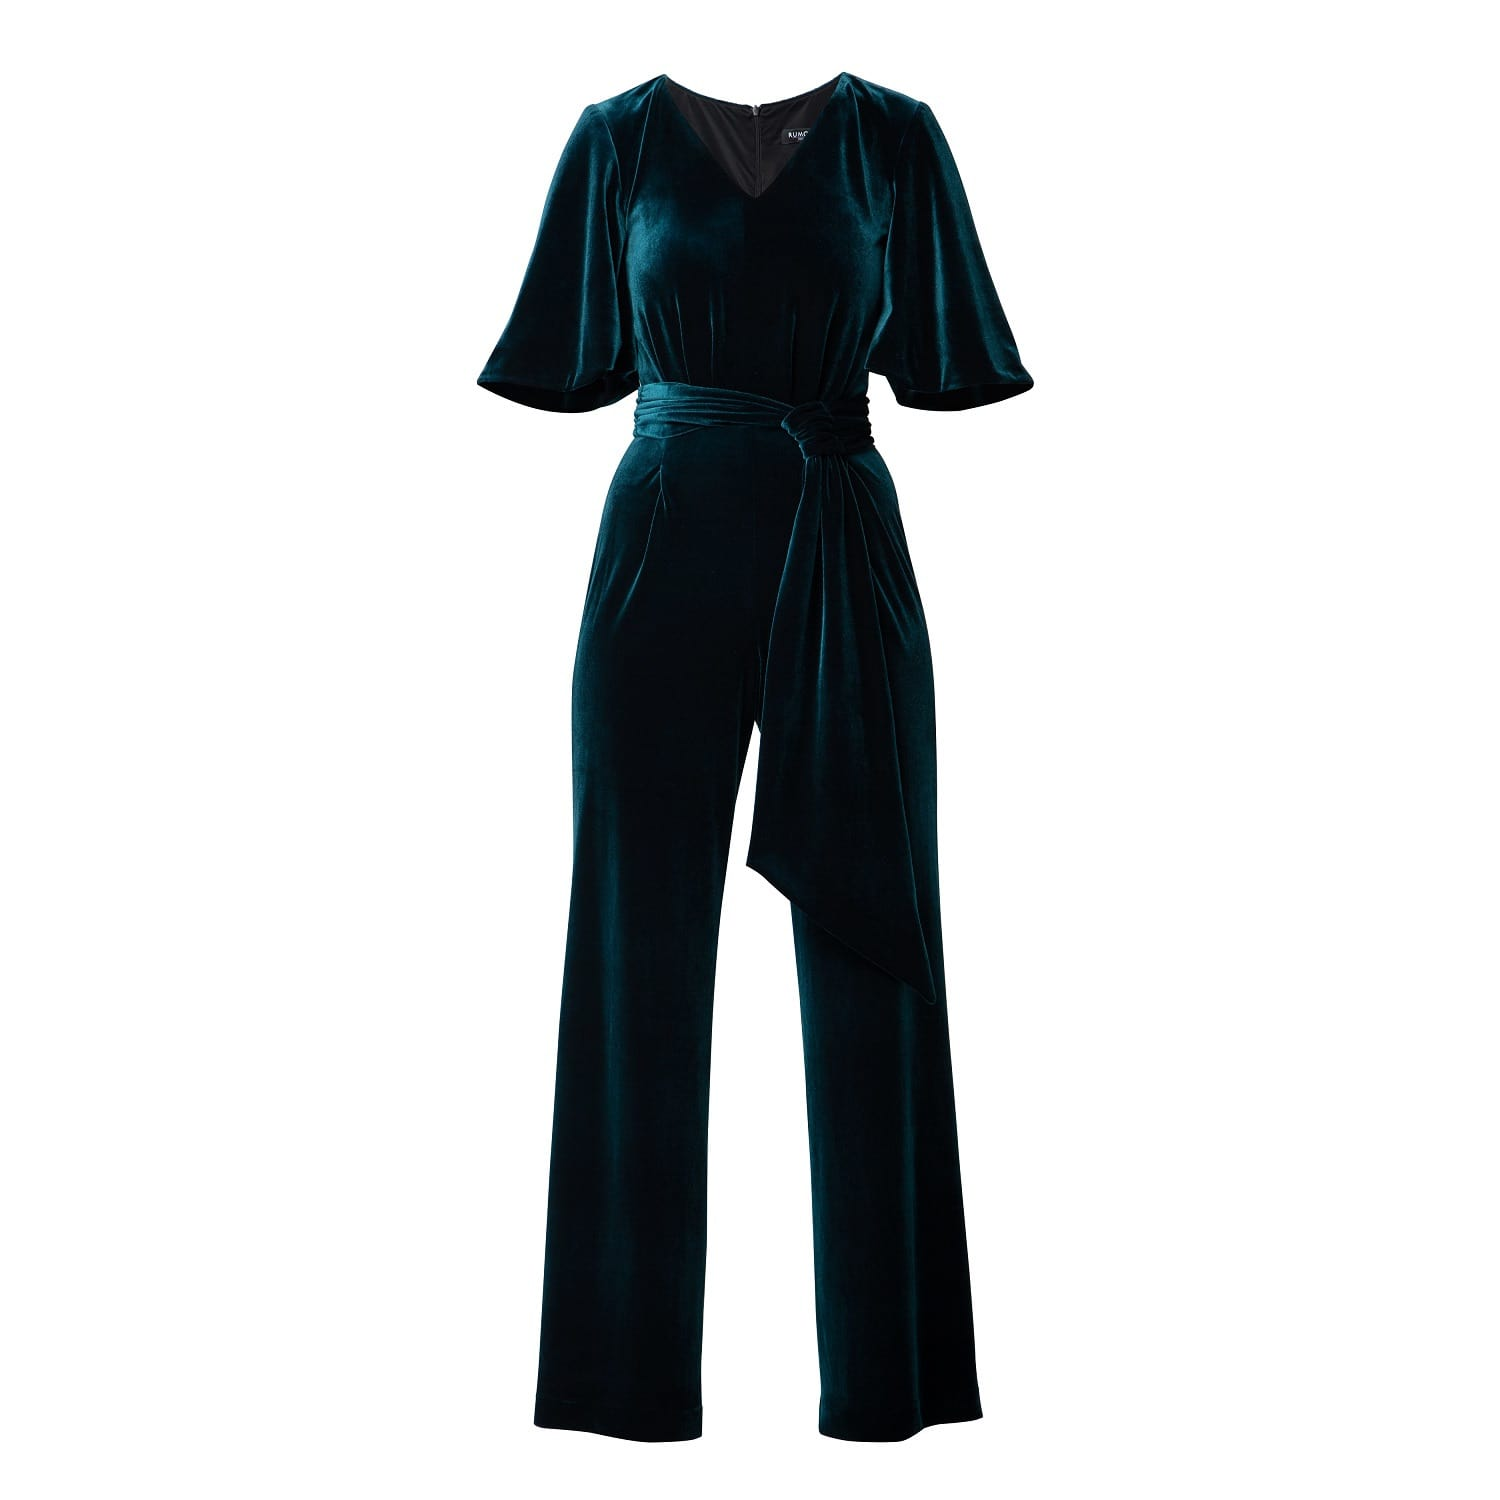 96b20c14c4212 Layla Velvet Jumpsuit With Bell Sleeves & Sash In Emerald Green ...